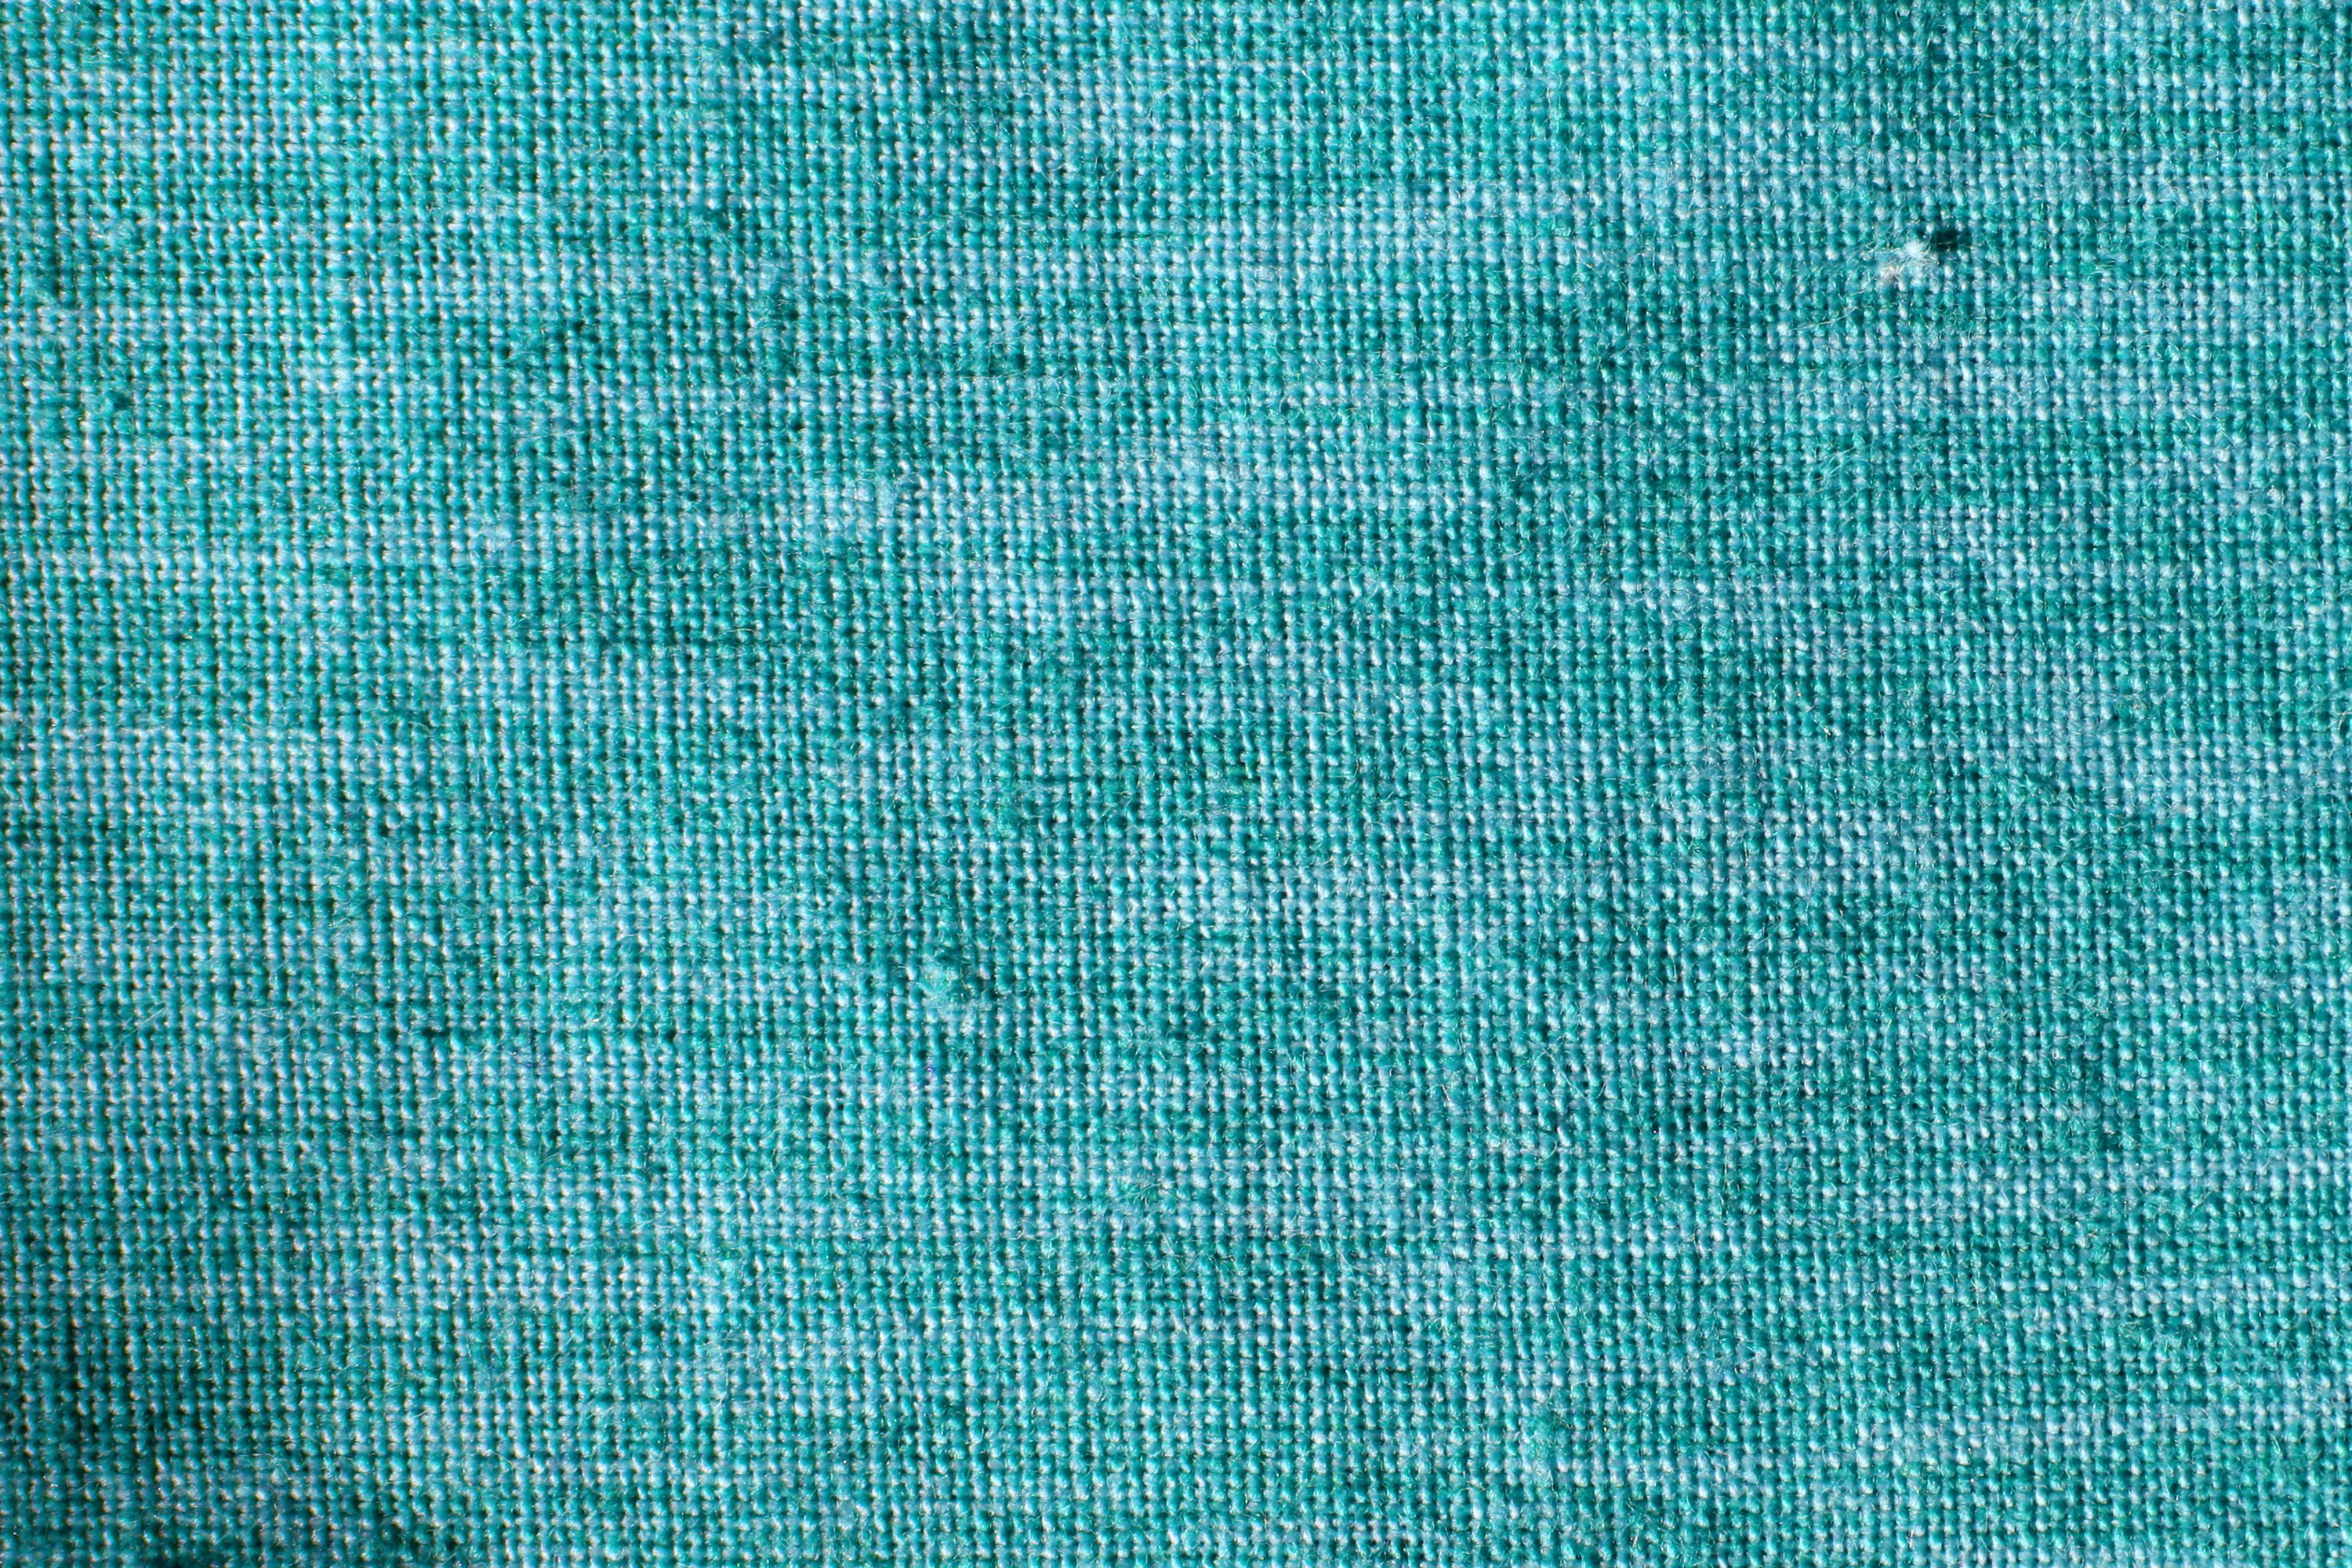 teal woven fabric close